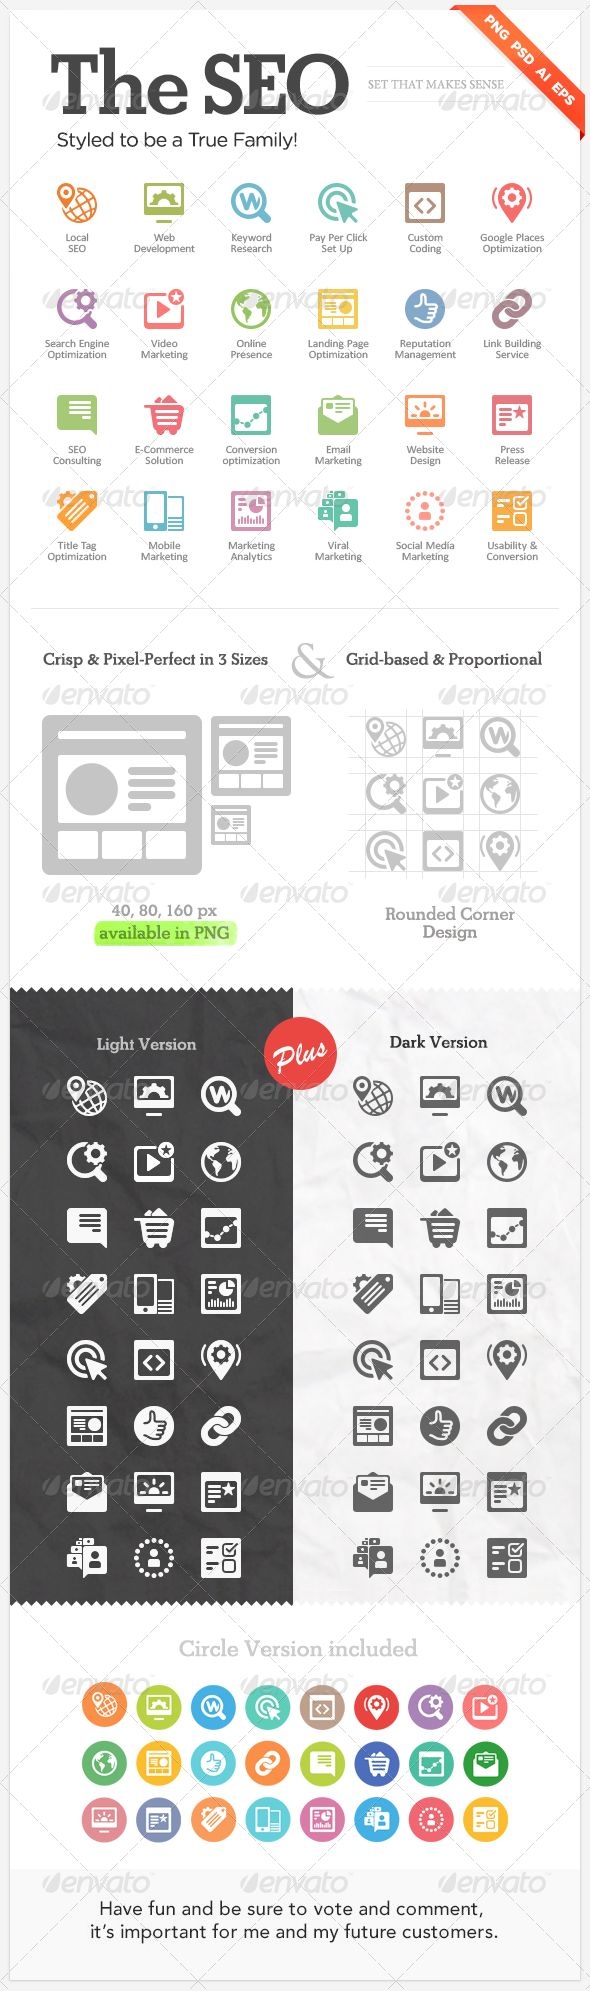 "Seo icons for web design ""The SEO"" - $7"